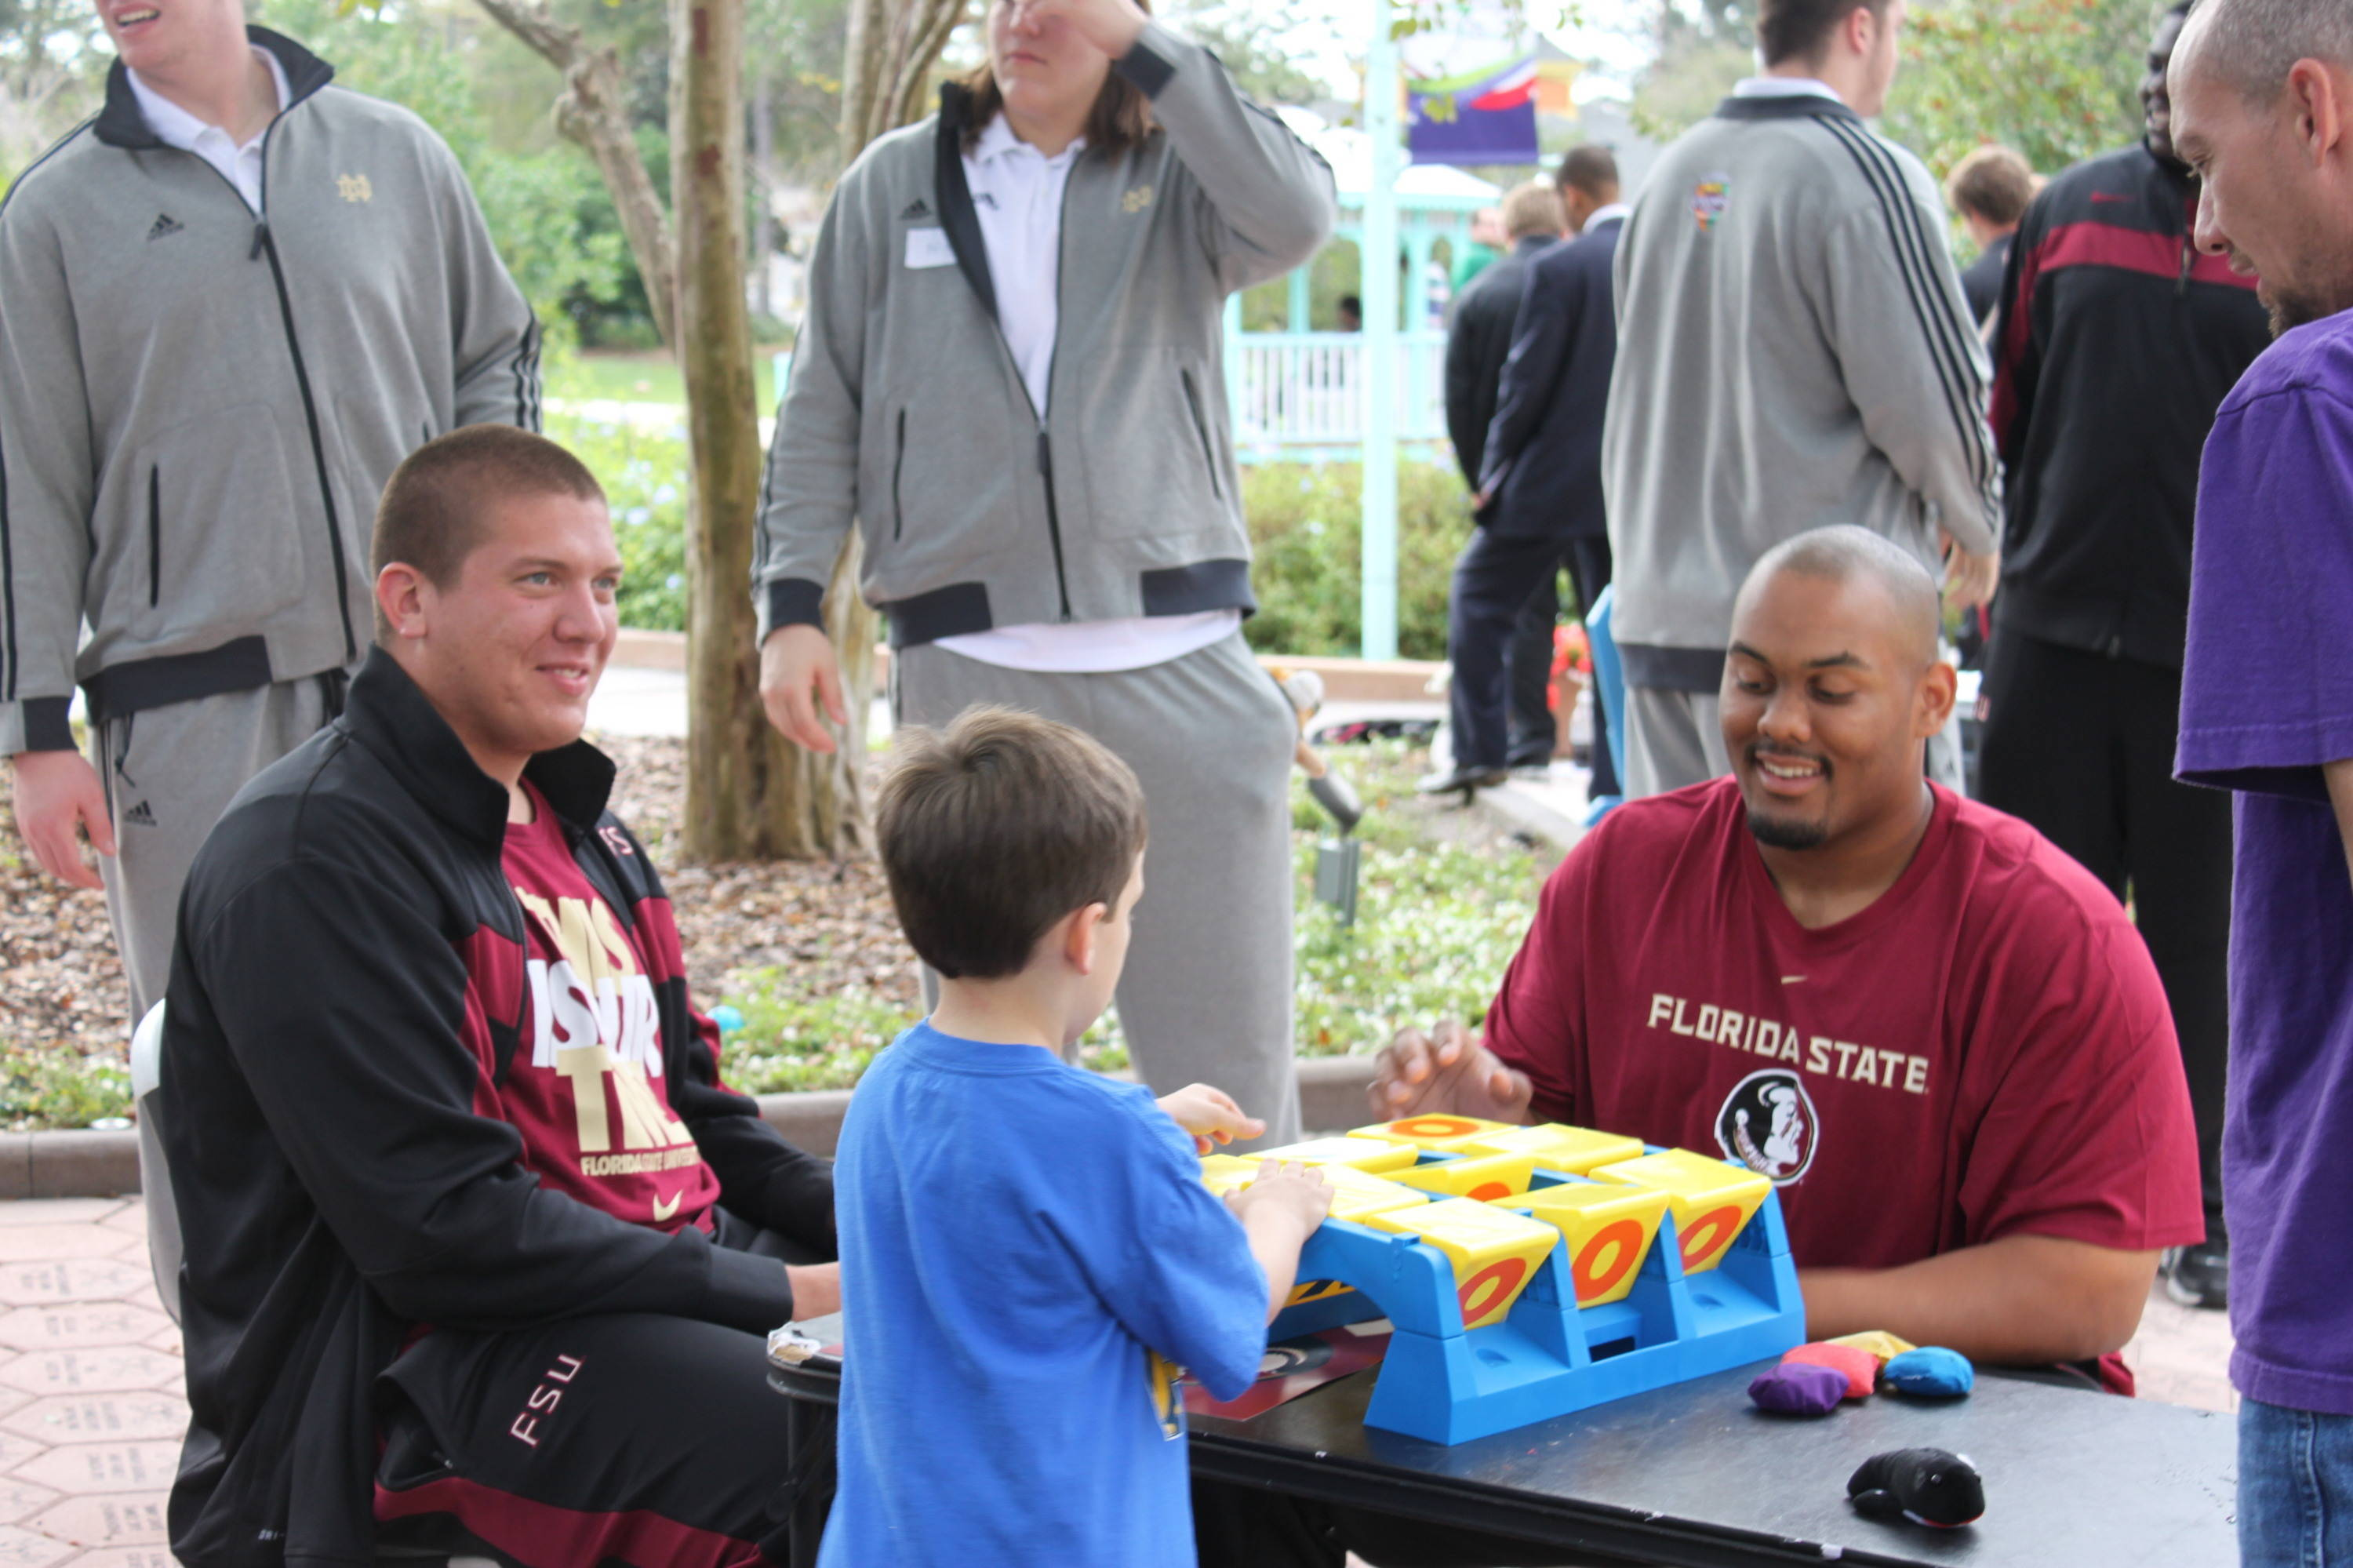 Andrew Datko and Rhonne Sanderson share a laugh during a game of Tic-Tac-Toe with a young boy.